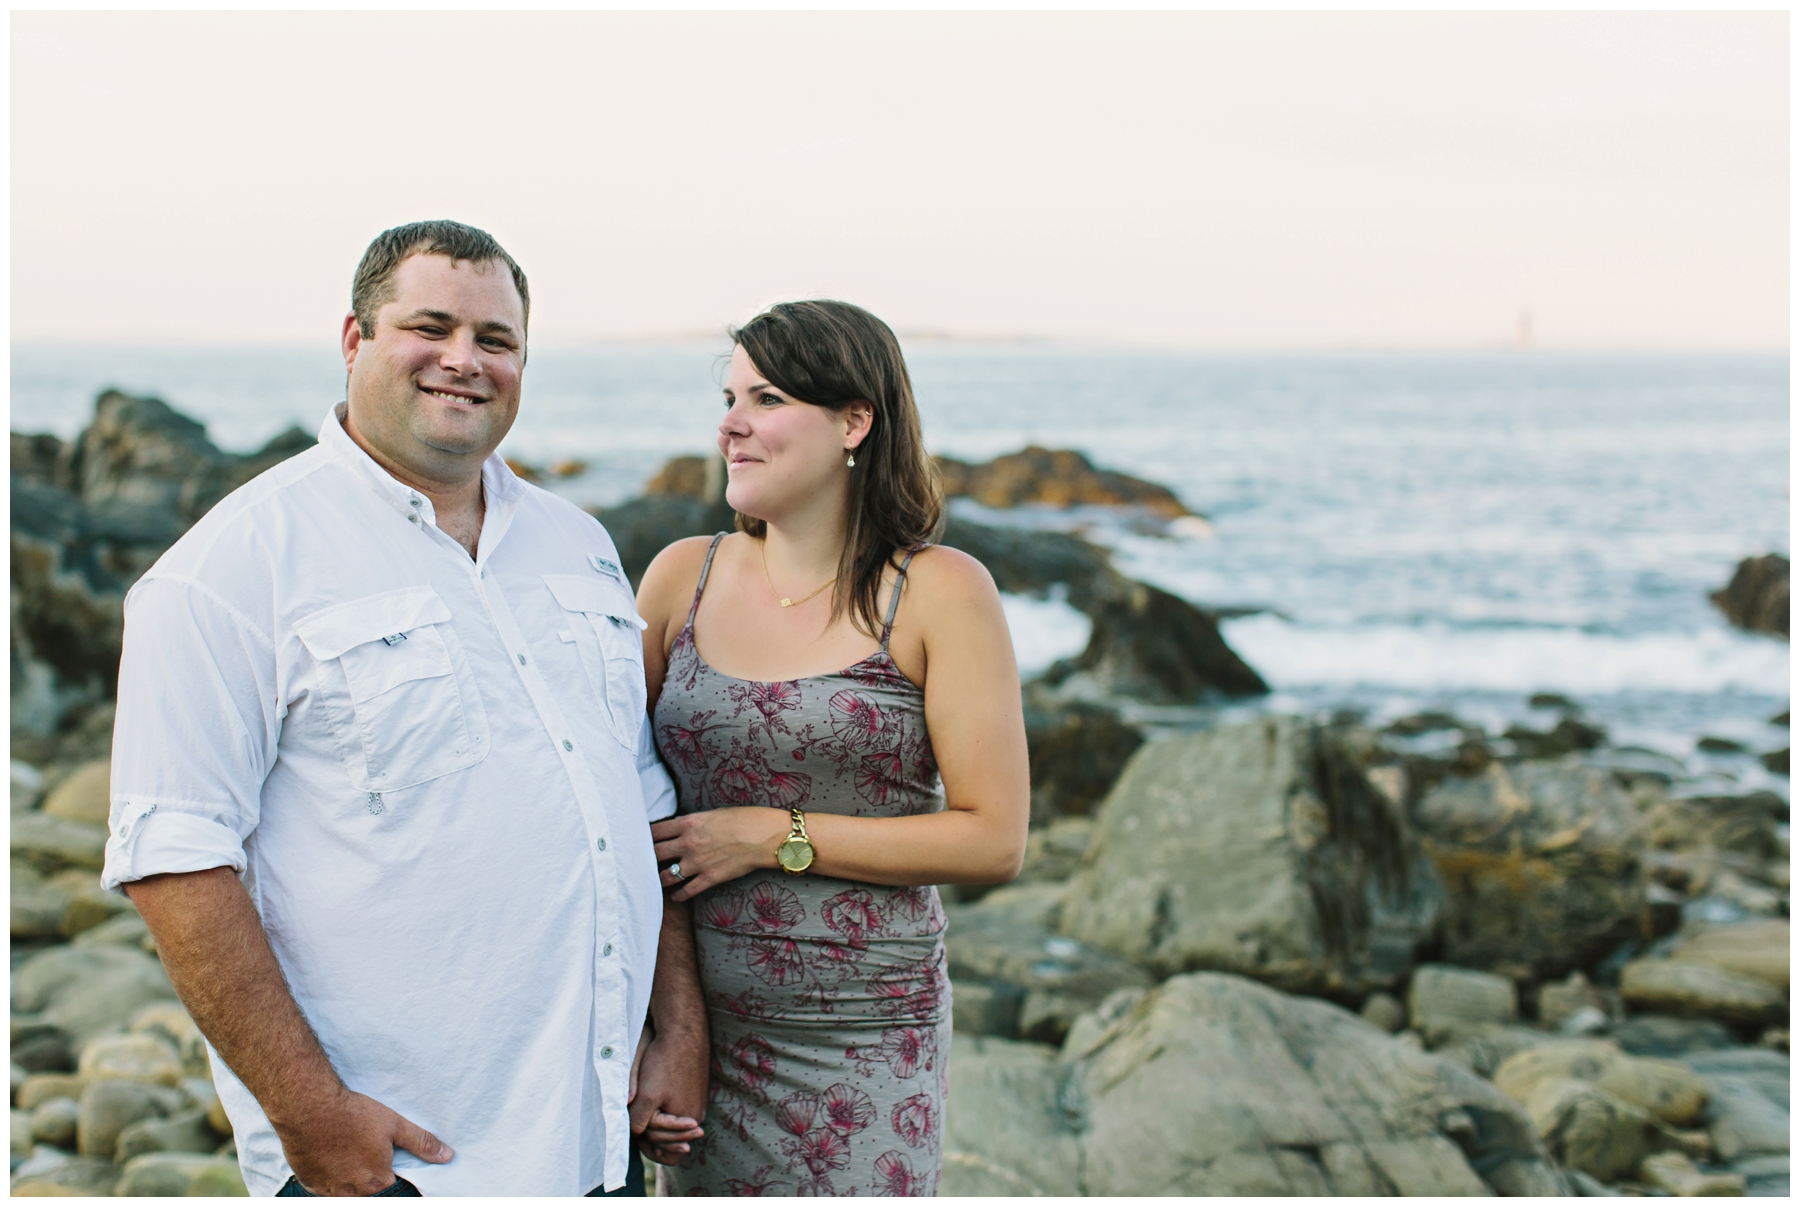 Maine_Photographer_Engagements_FortWilliams_PortlandHeadLight_lighthouse_coastal_seaside-007